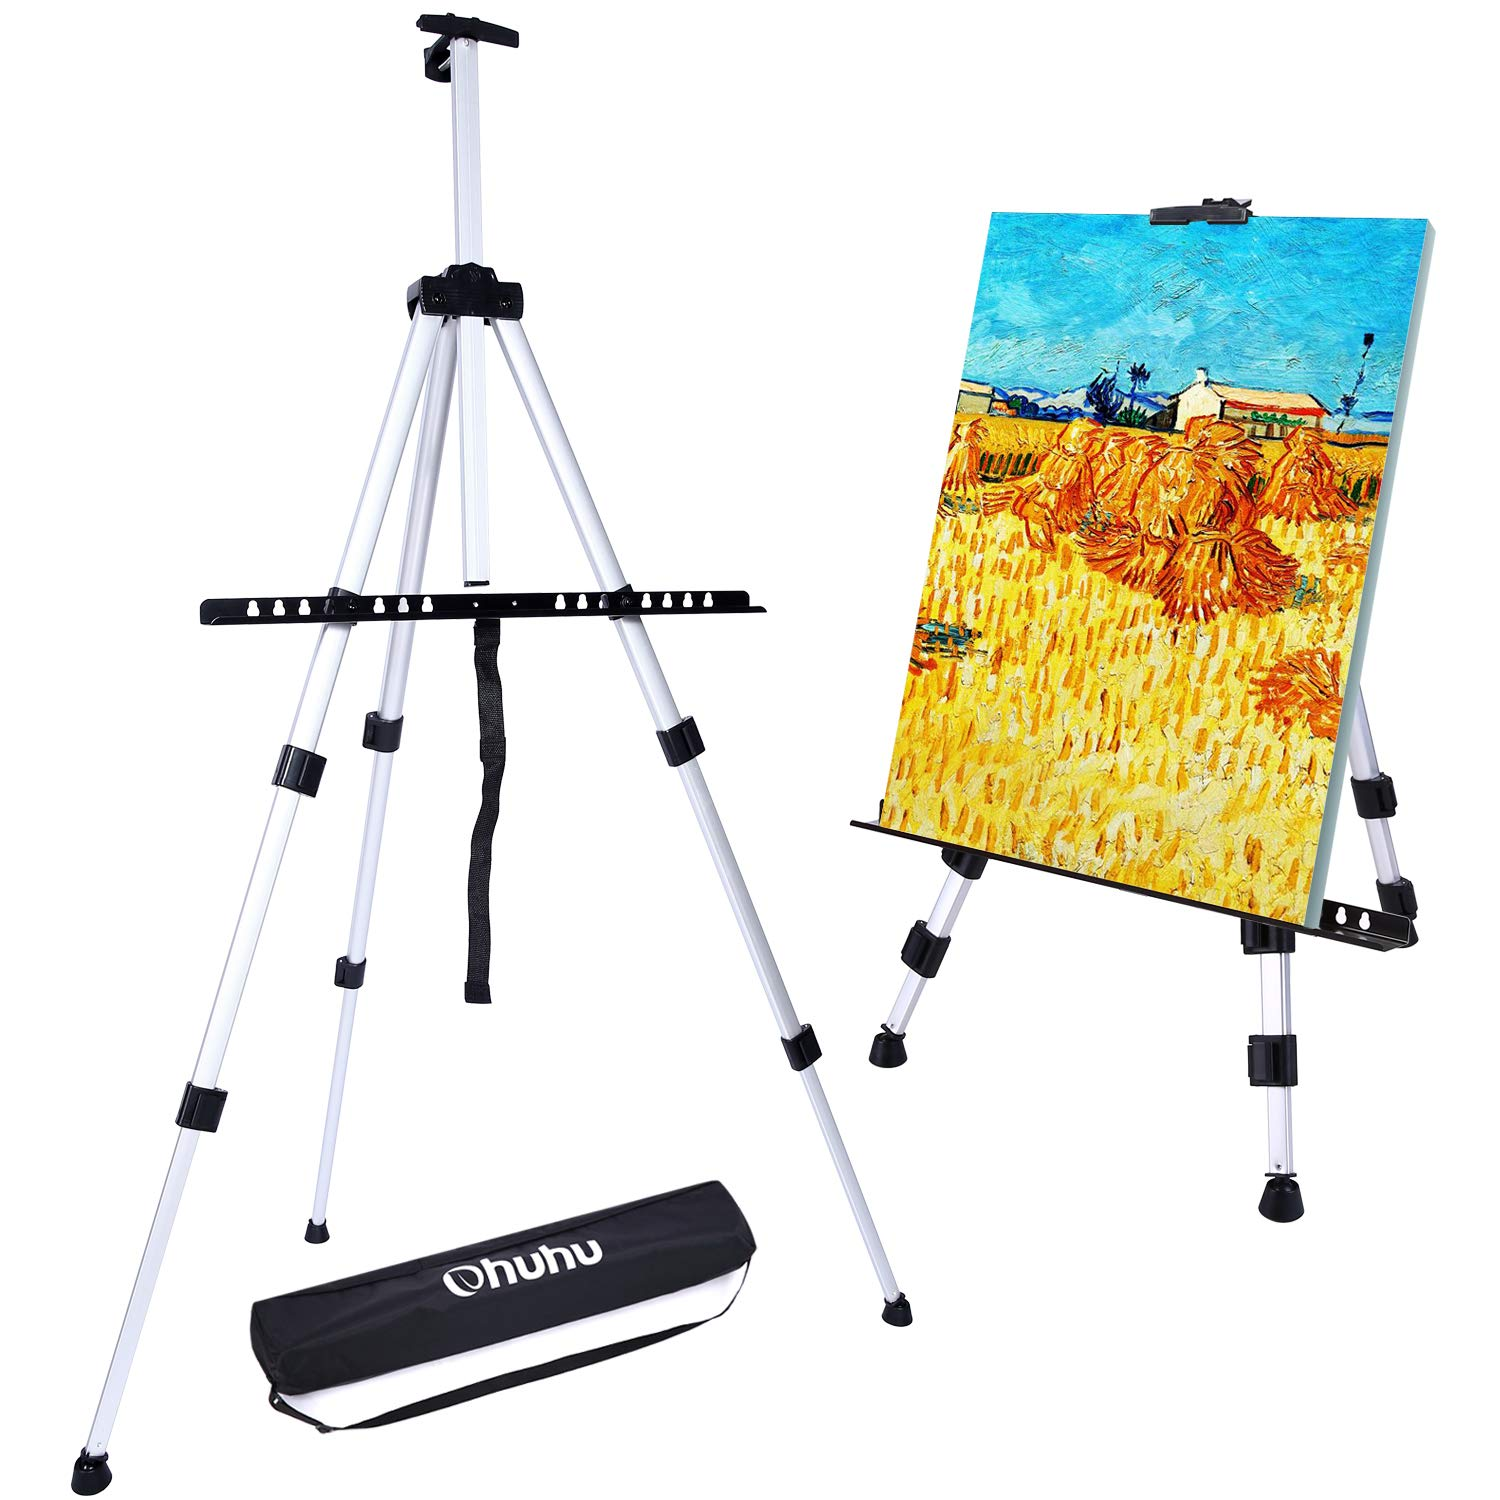 Ohuhu Artist Easel, 66'' Aluminum Field Easel Stand with Bag for Table-Top/Floor, Art Easels with Adjustable Height from 21-Inch to 66-Inch by Ohuhu